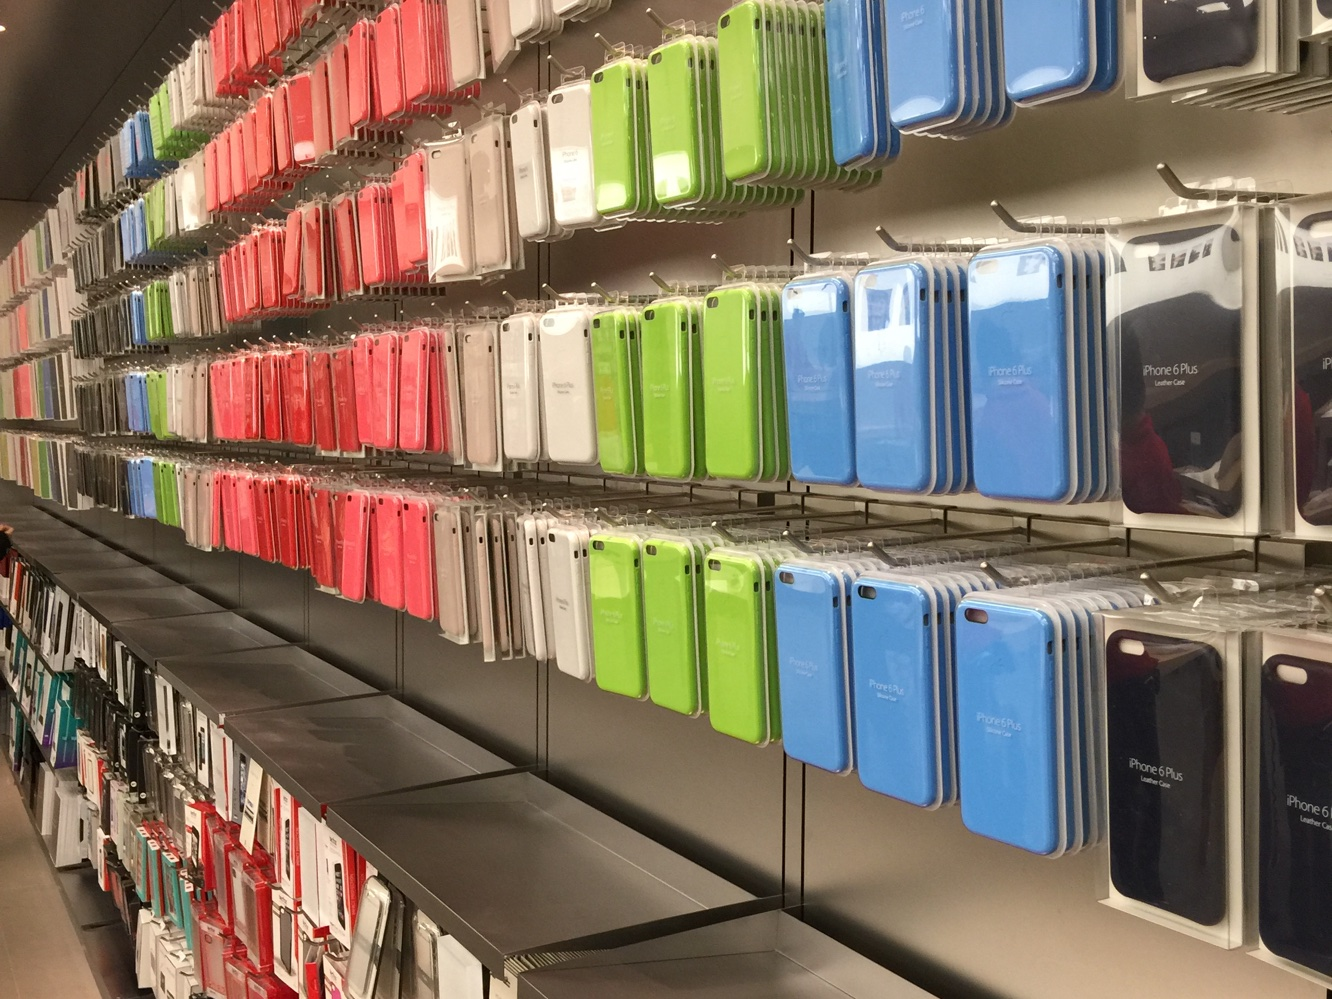 Apple threatens action against accessory makers using leaked device specs 1